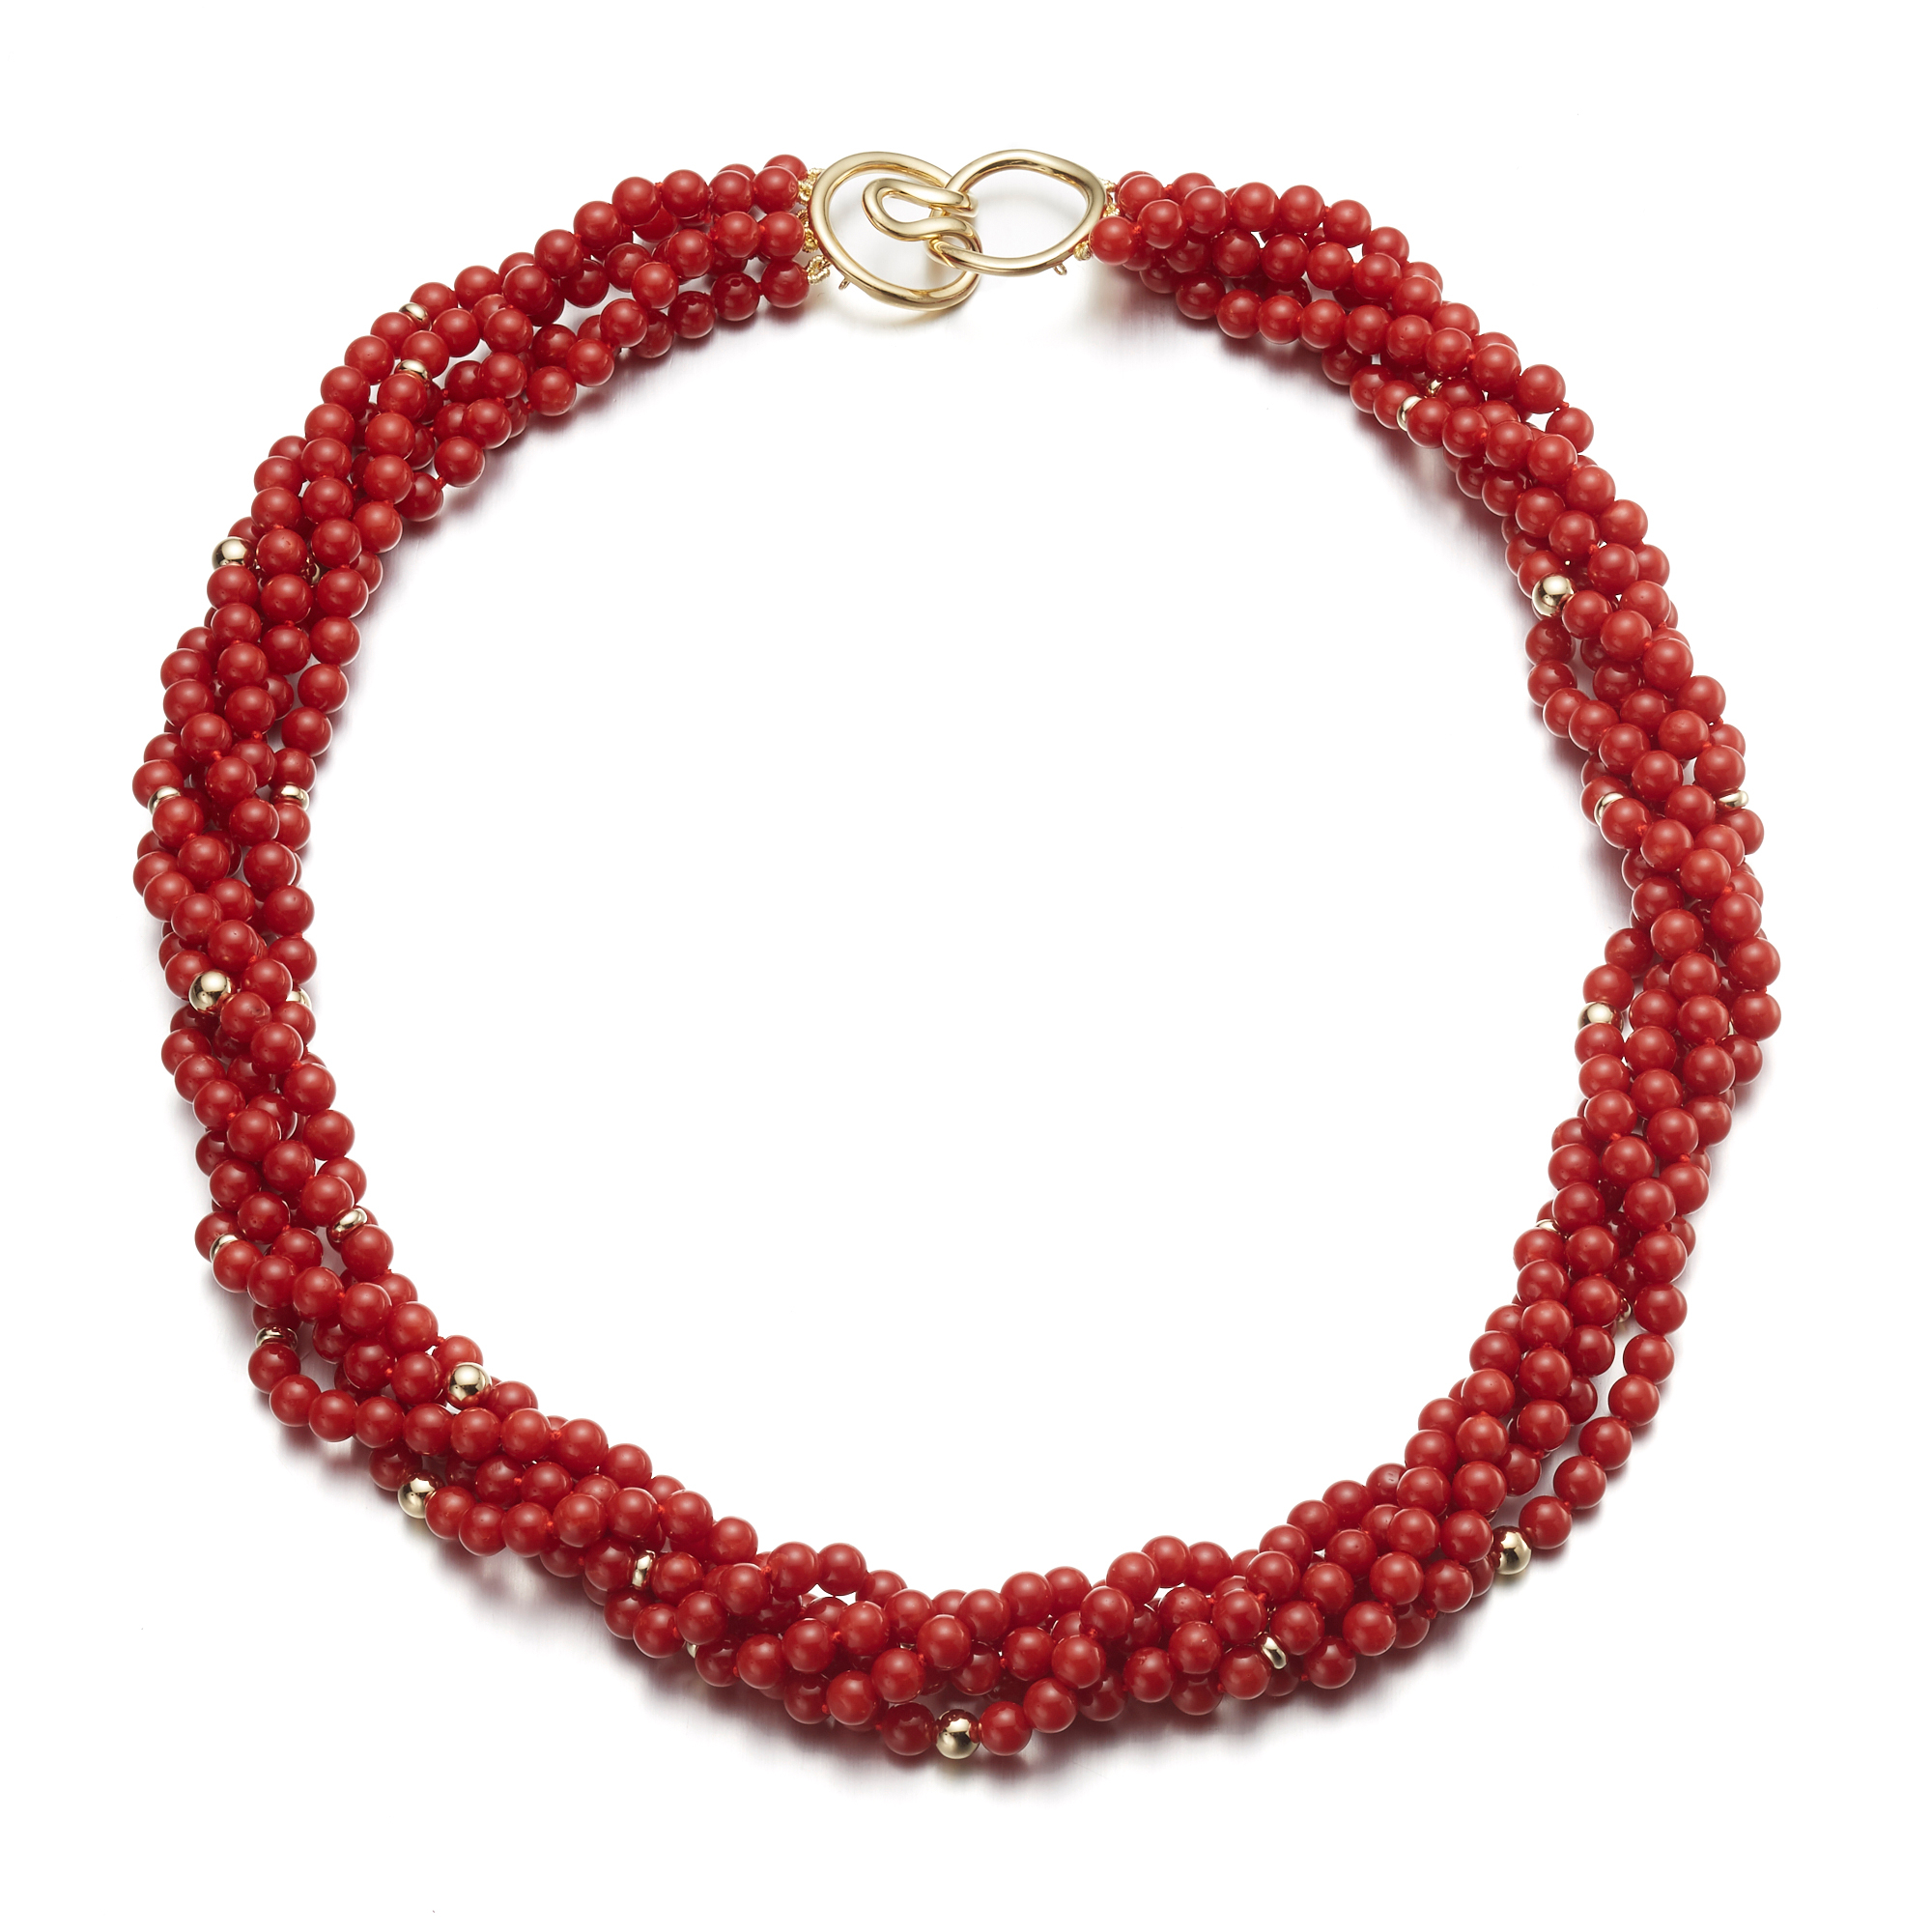 Gump's Five-Strand Red Coral Twist Necklace